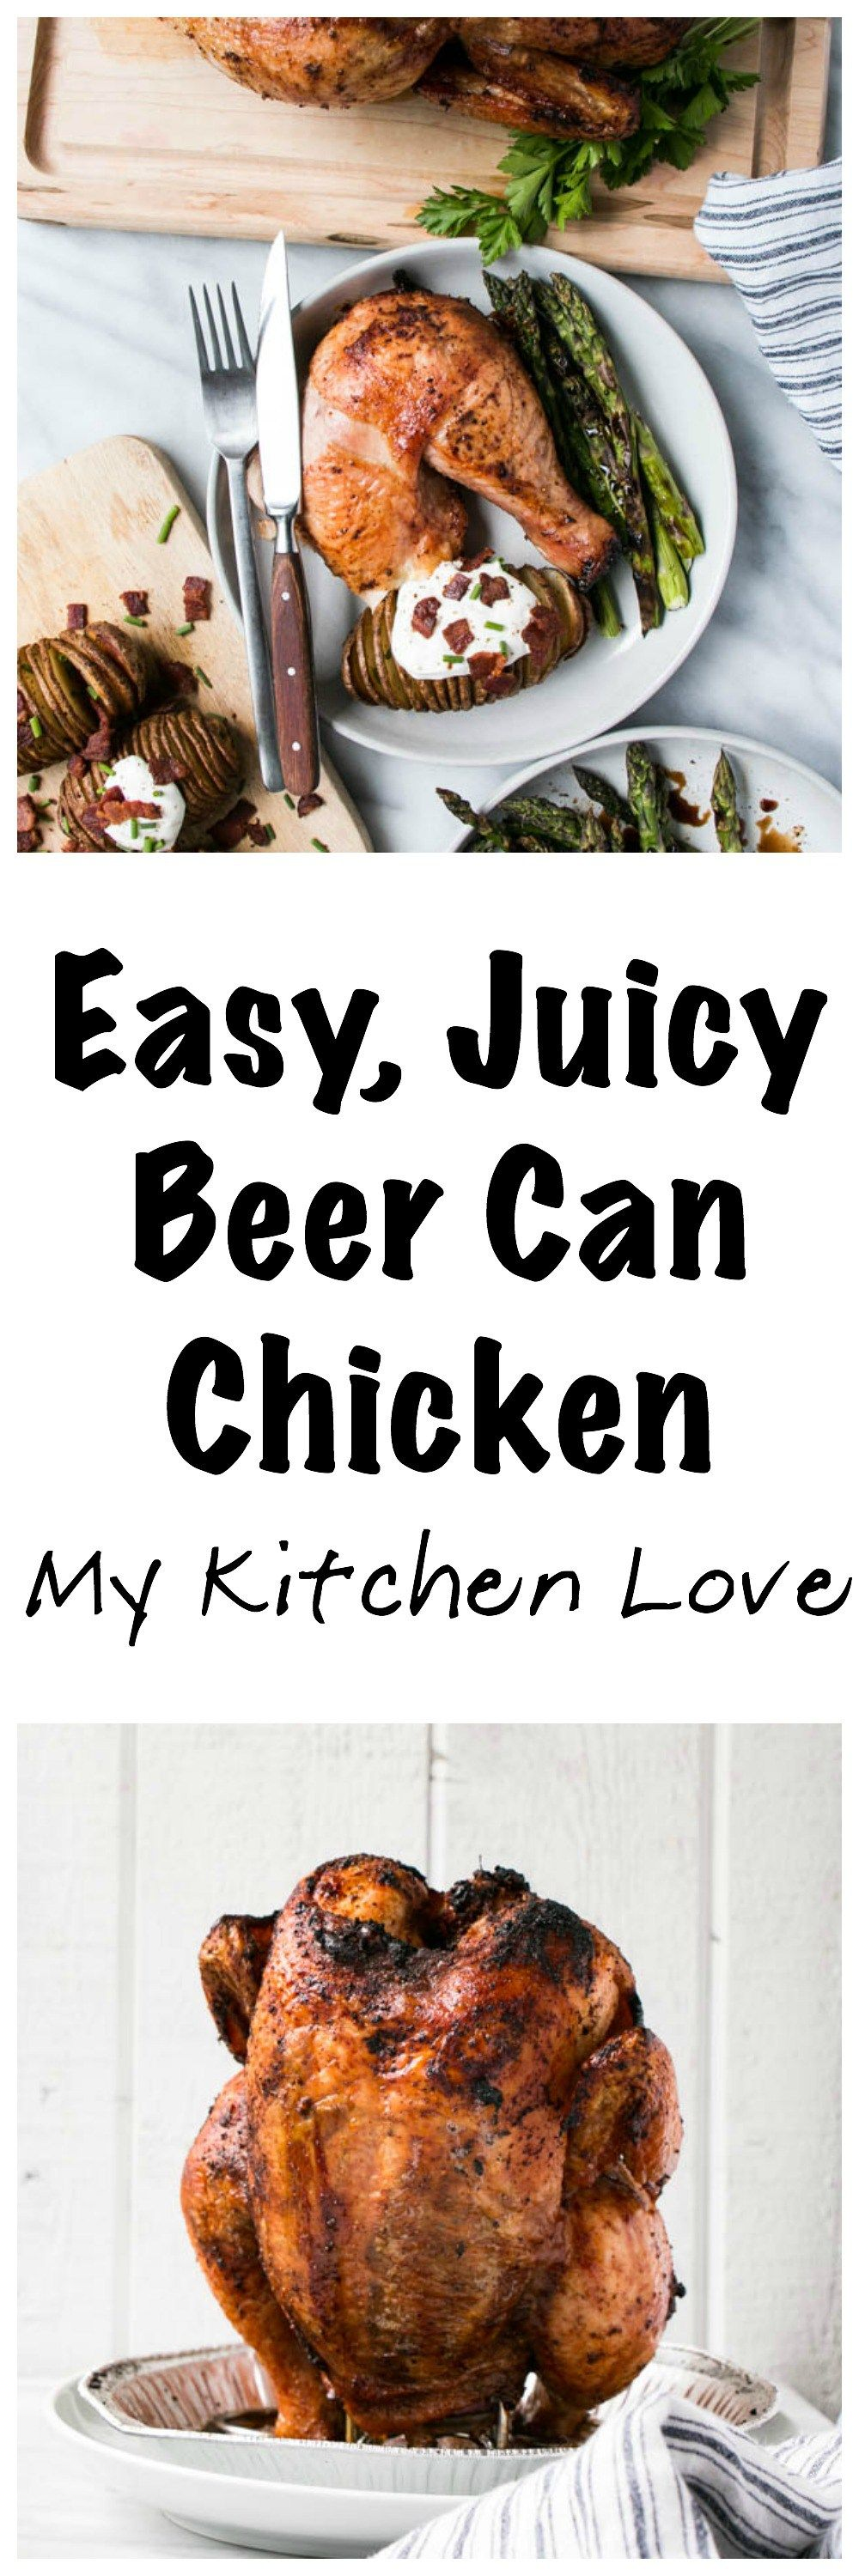 Easy Beer Can Chicken | My Kitchen Love. Juicy and flavourful ...